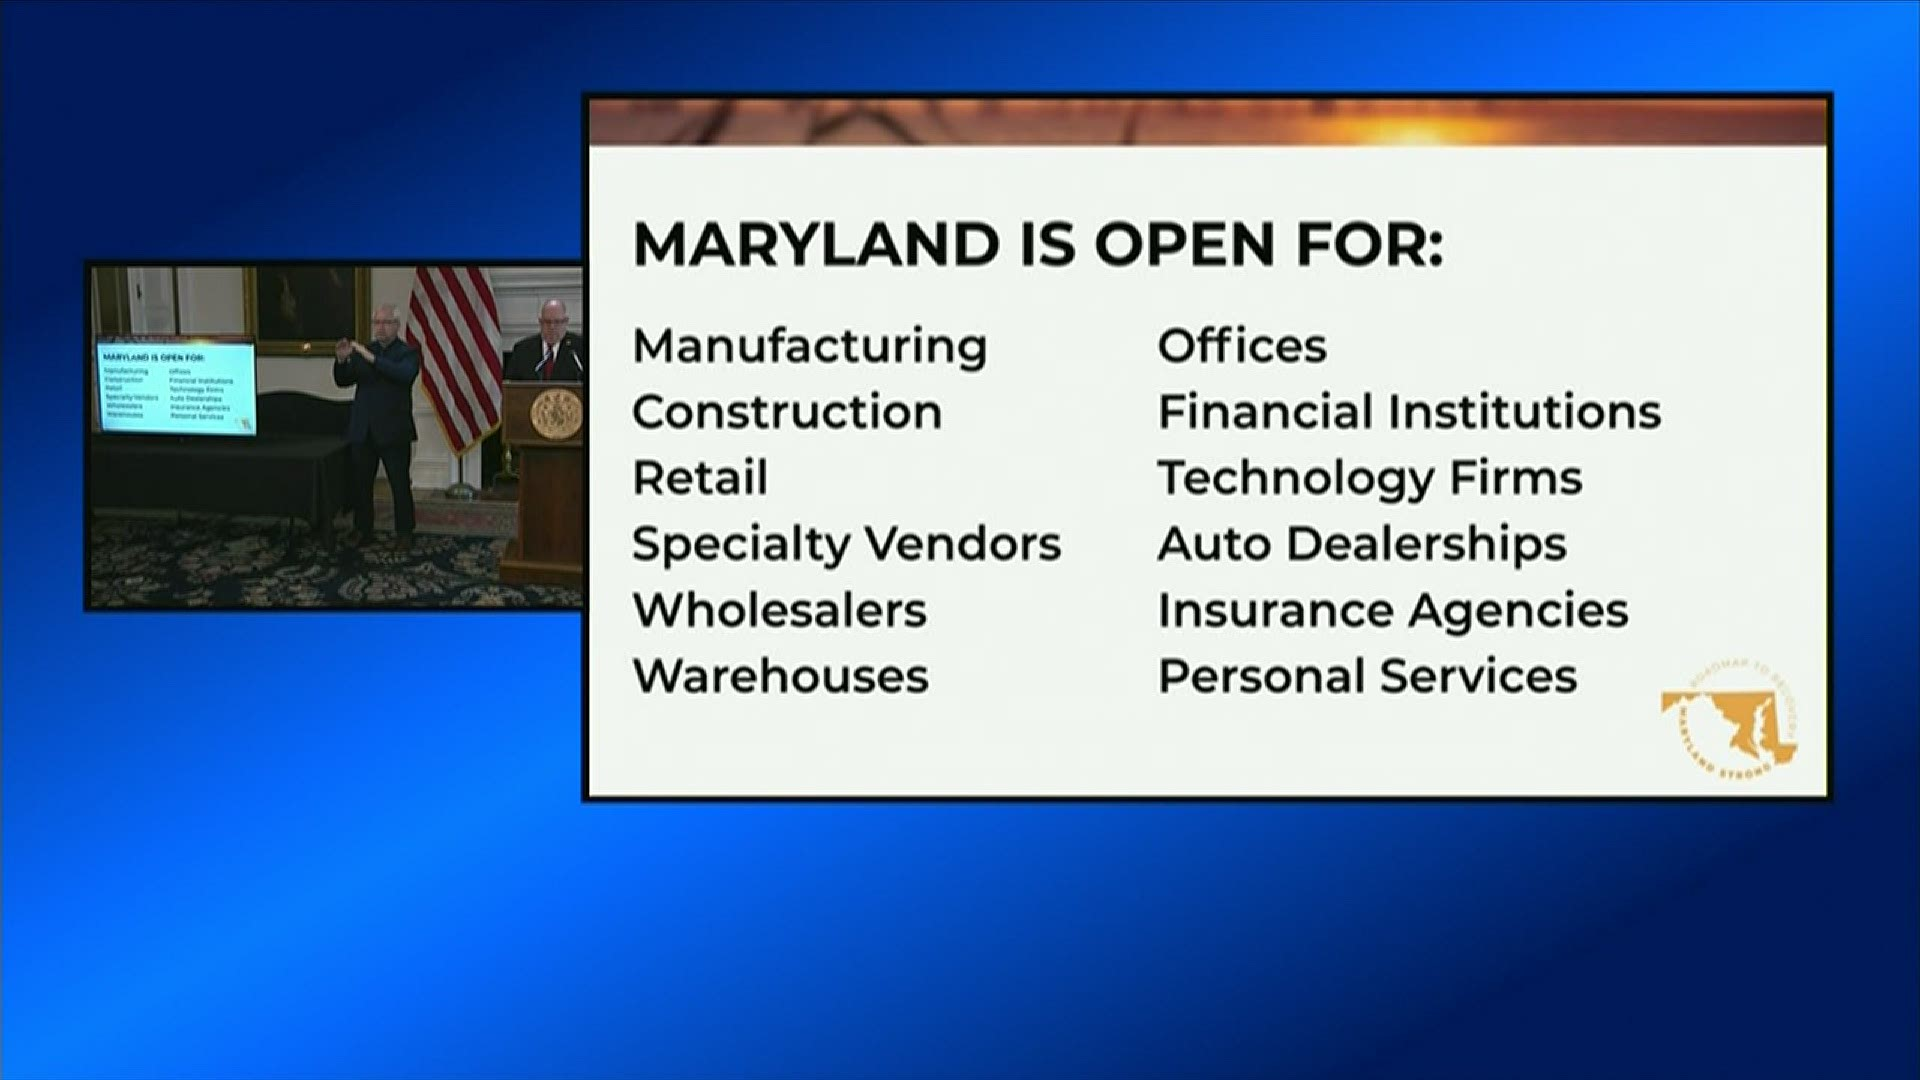 Maryland Phase Reopening All The Things You Can Do Again Wusa9 Com